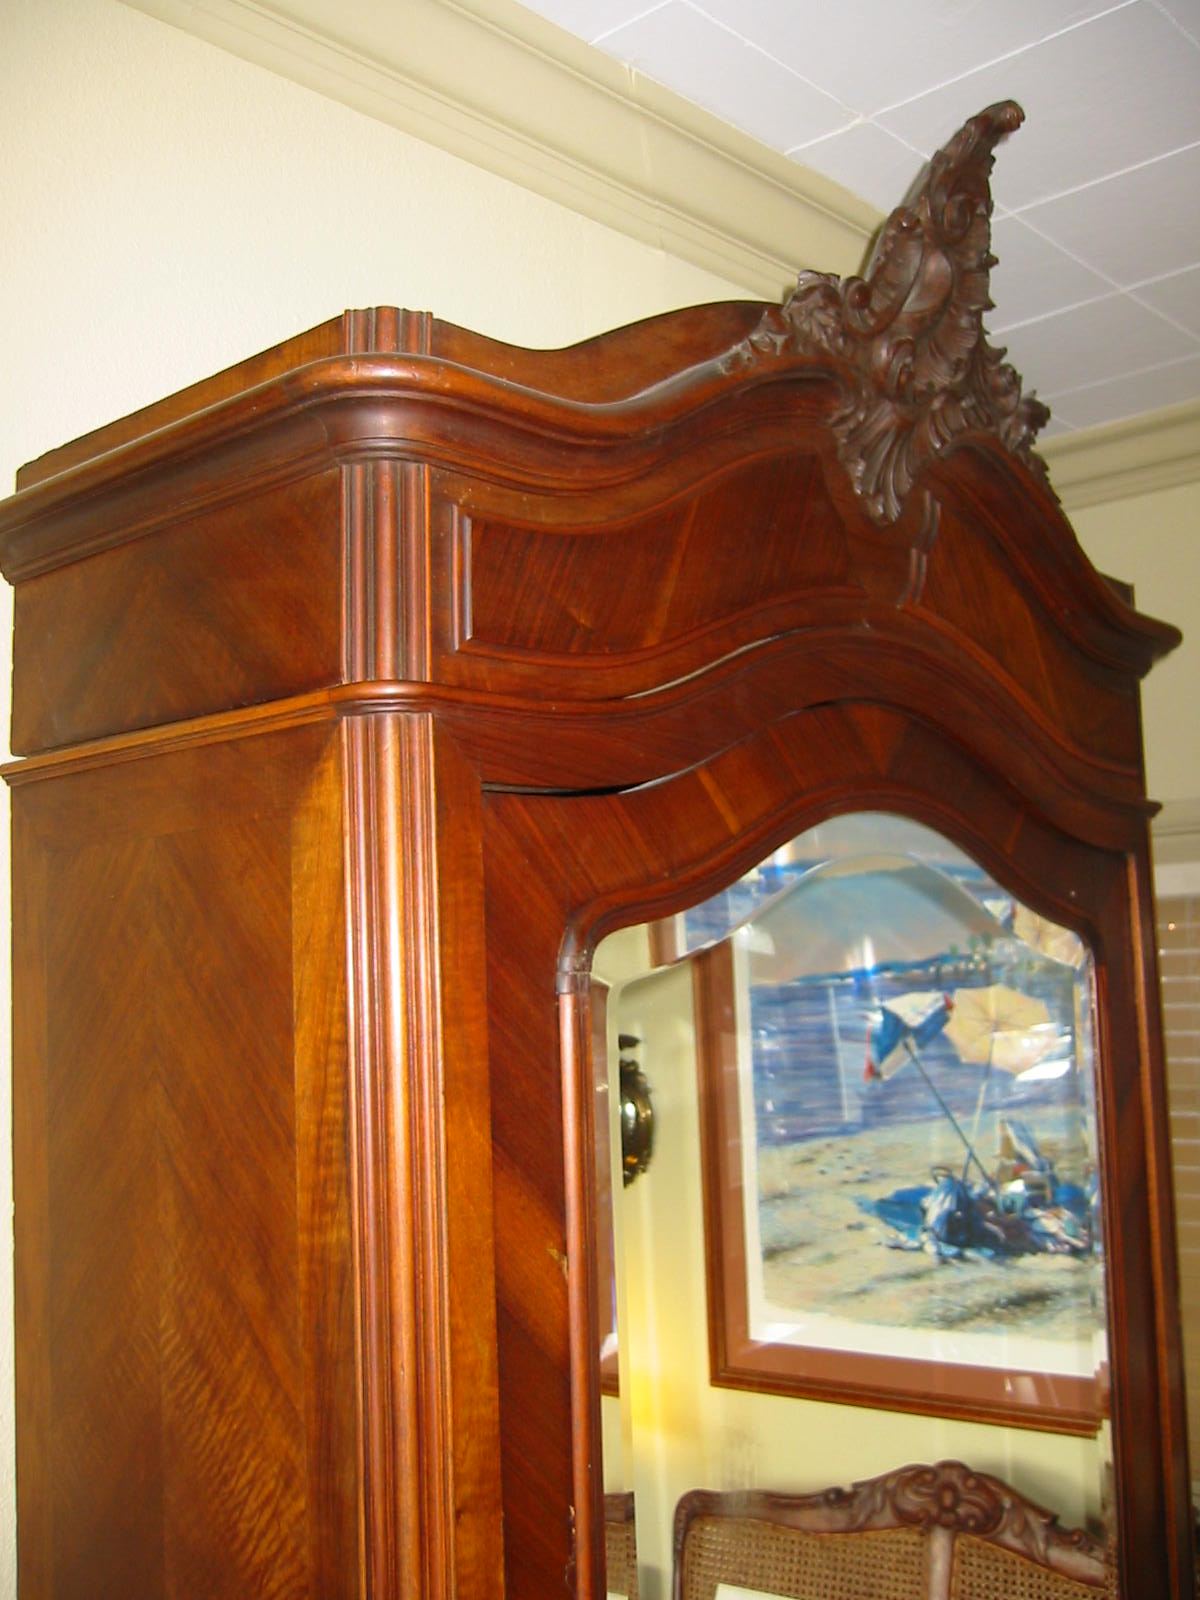 french armoire gorgeous crested walnut mahogany wood from paris france incredible dark wood beveled mirrored door sectional interior inscribed label antique mahogany armoire